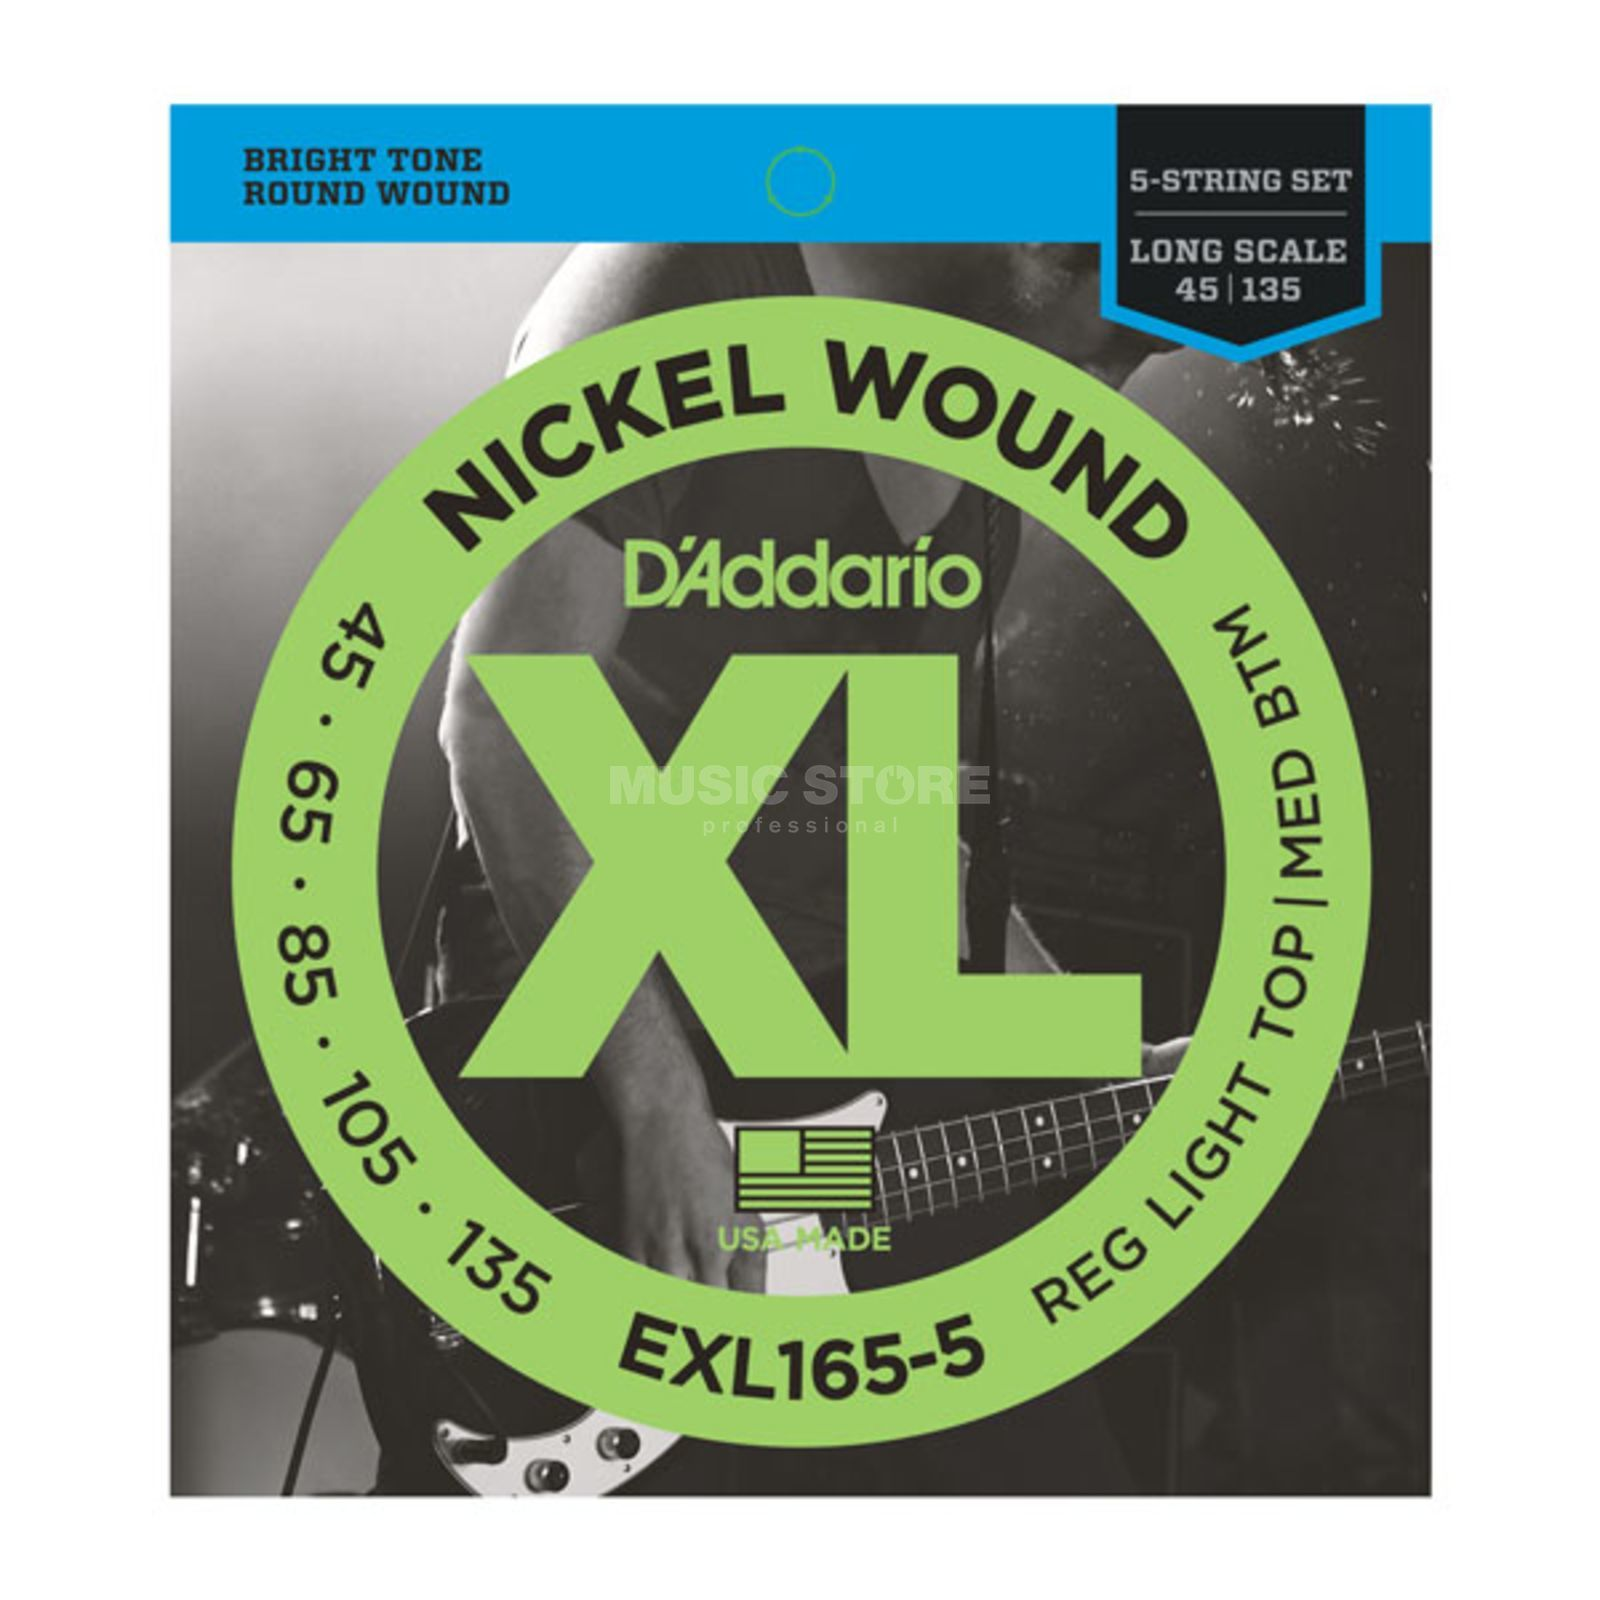 D'Addario Bass Strings XL Nickel 45-135 45-65-85-105-135, EXL165-5 Produktbillede